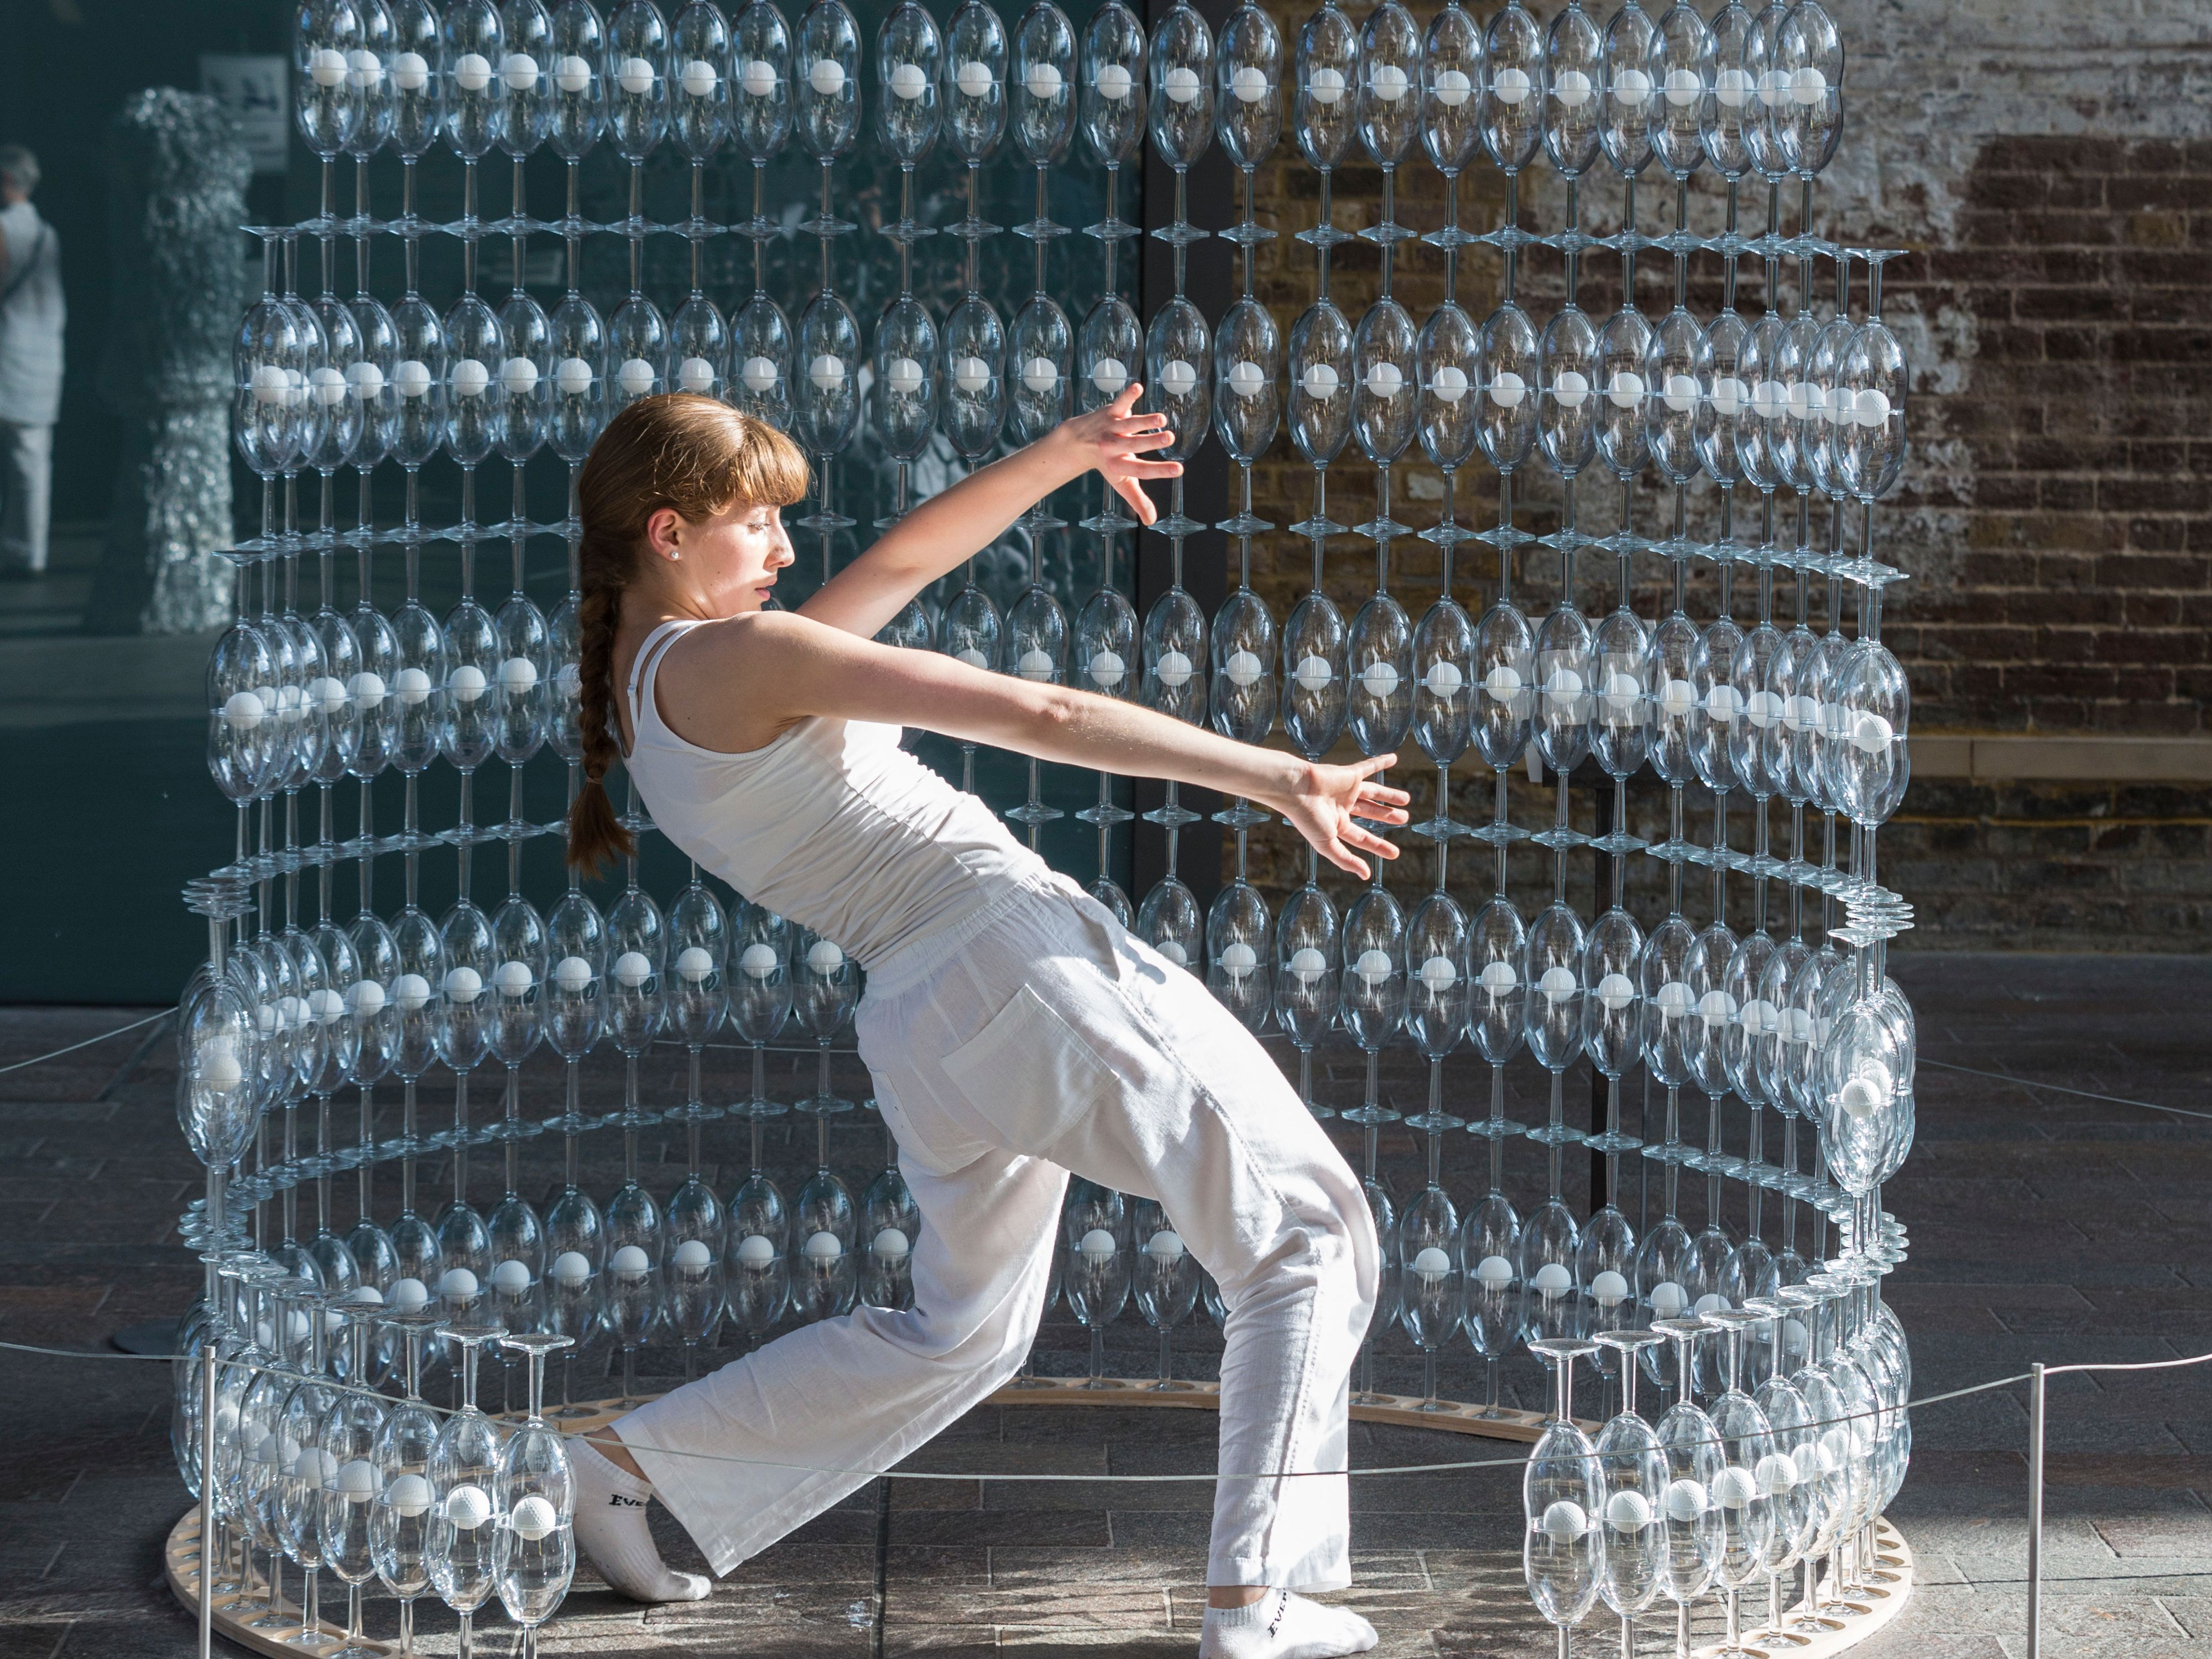 Image of a student doing a dance performance while surrounded by structure constructed from champagne glasses